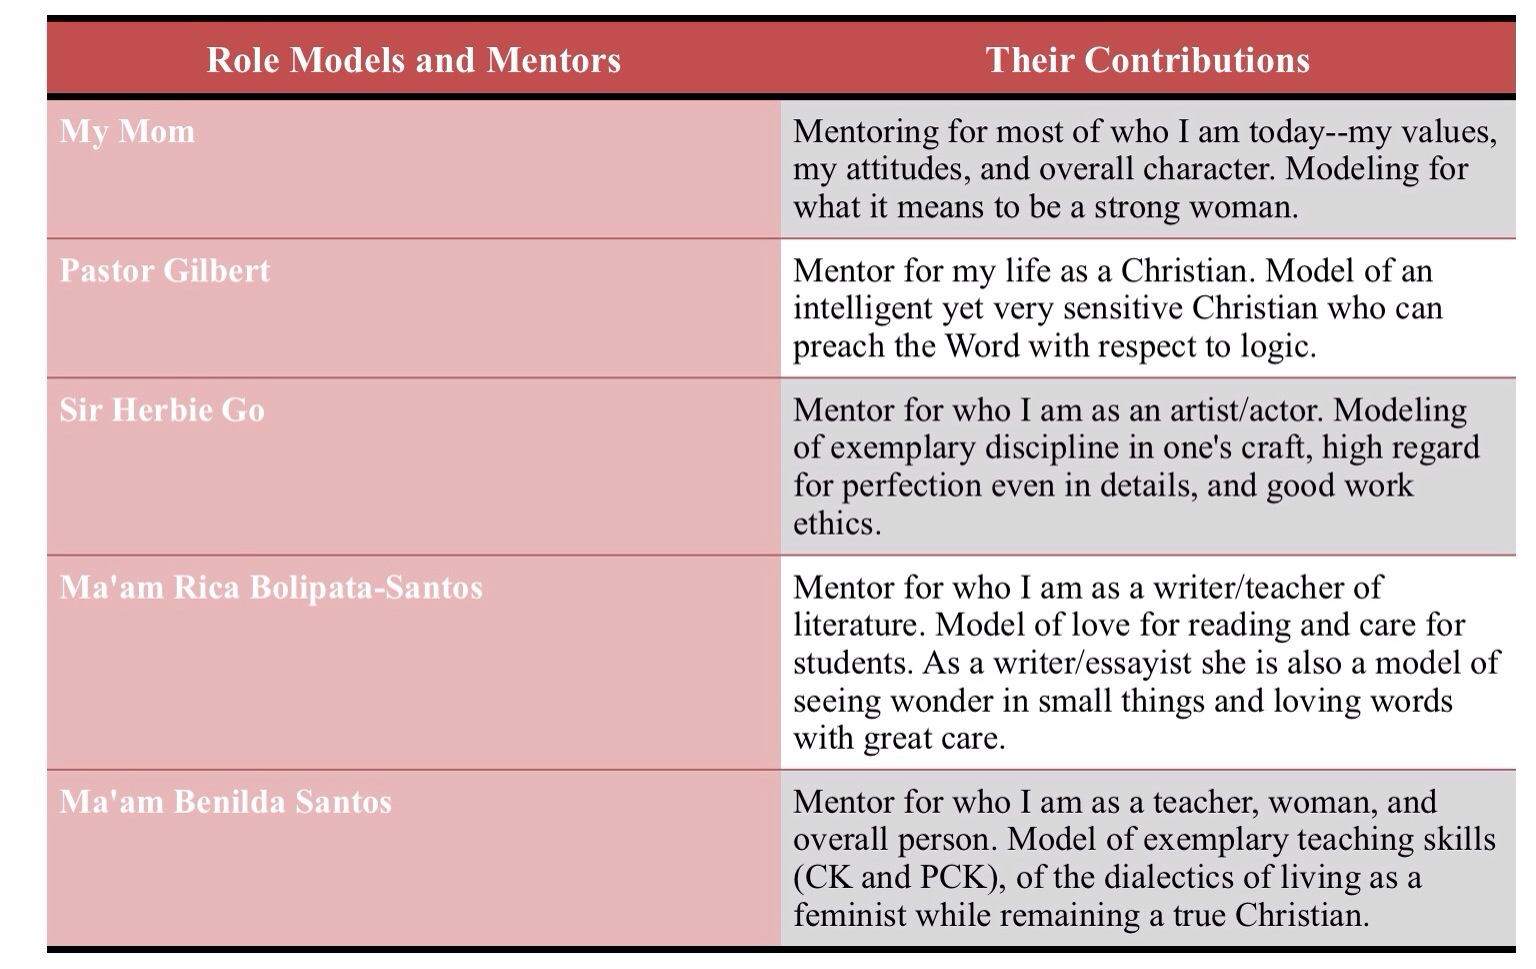 Portfolio Activity Models And Mentors In My Life